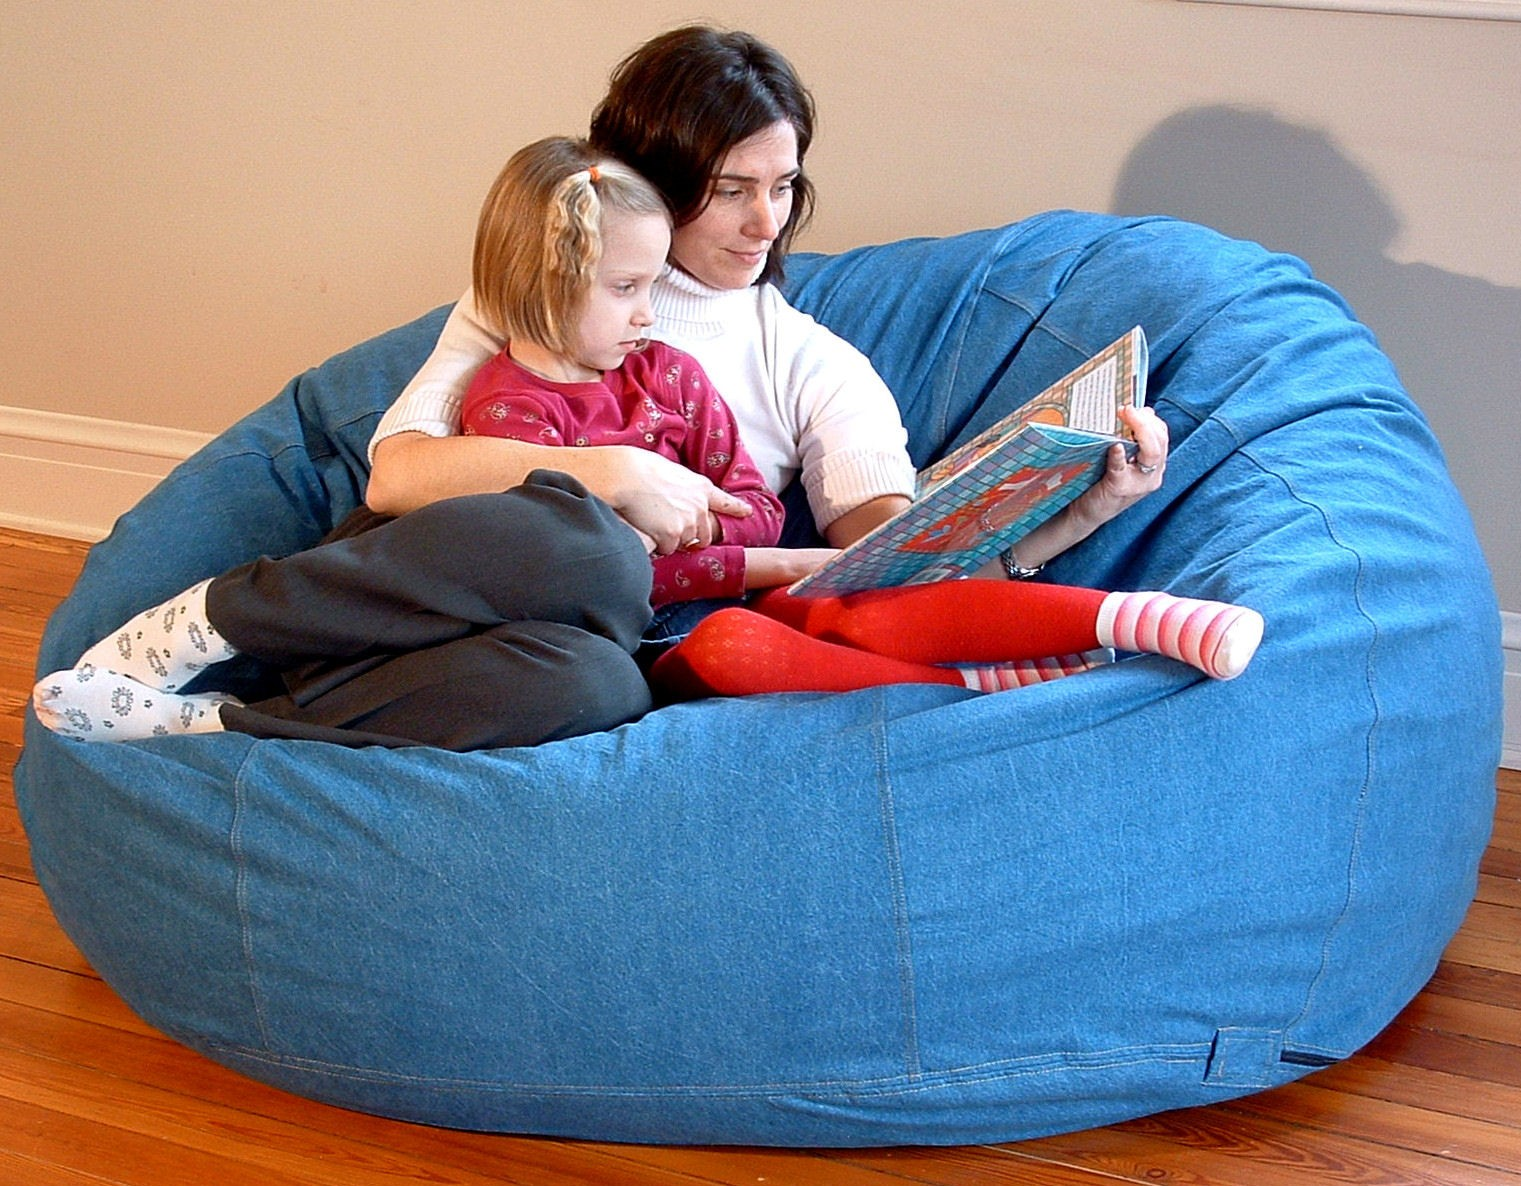 Anyone can rest right on the bean bag chairs with their kids